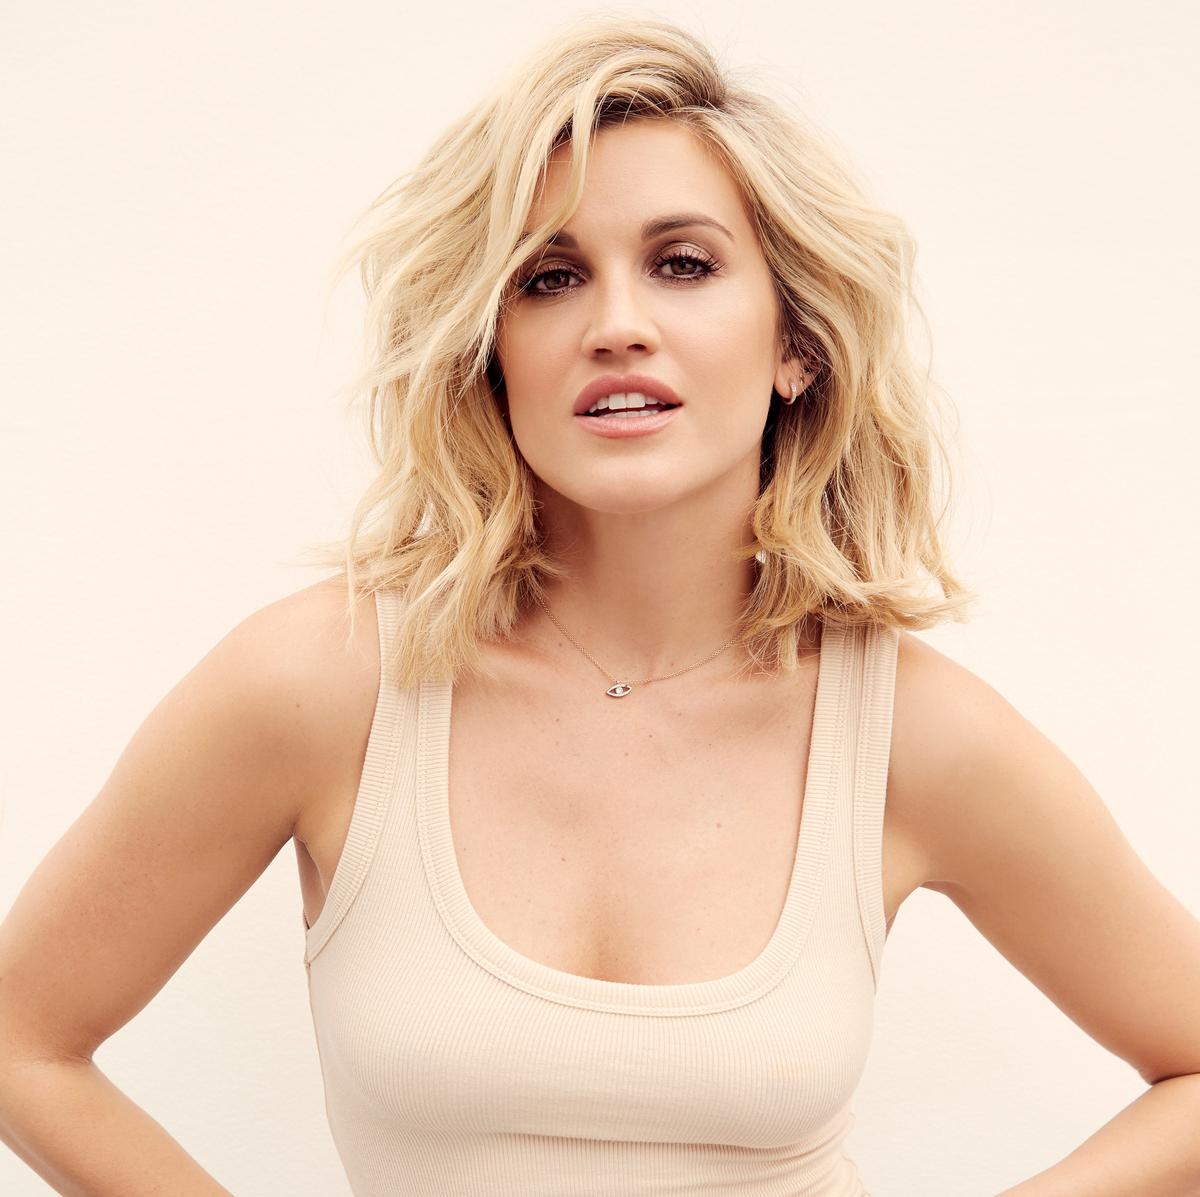 Strictly Come Dancing star Ashley Roberts has become a National Fitness Day ambassador